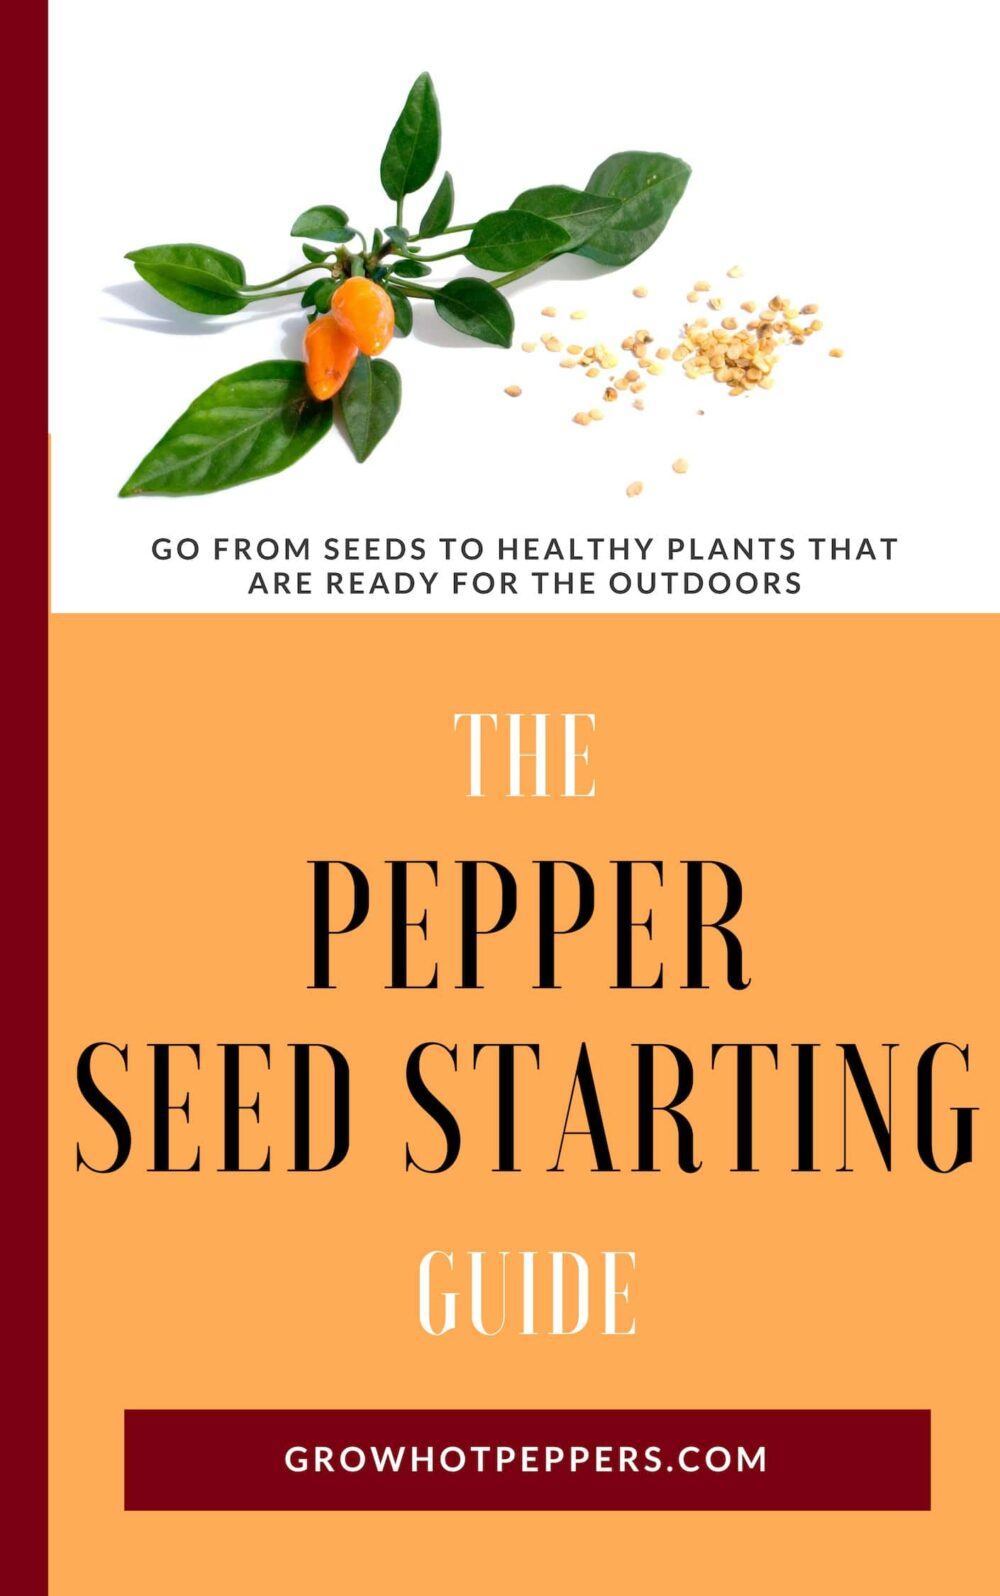 The Pepper Seed-Starting Guide